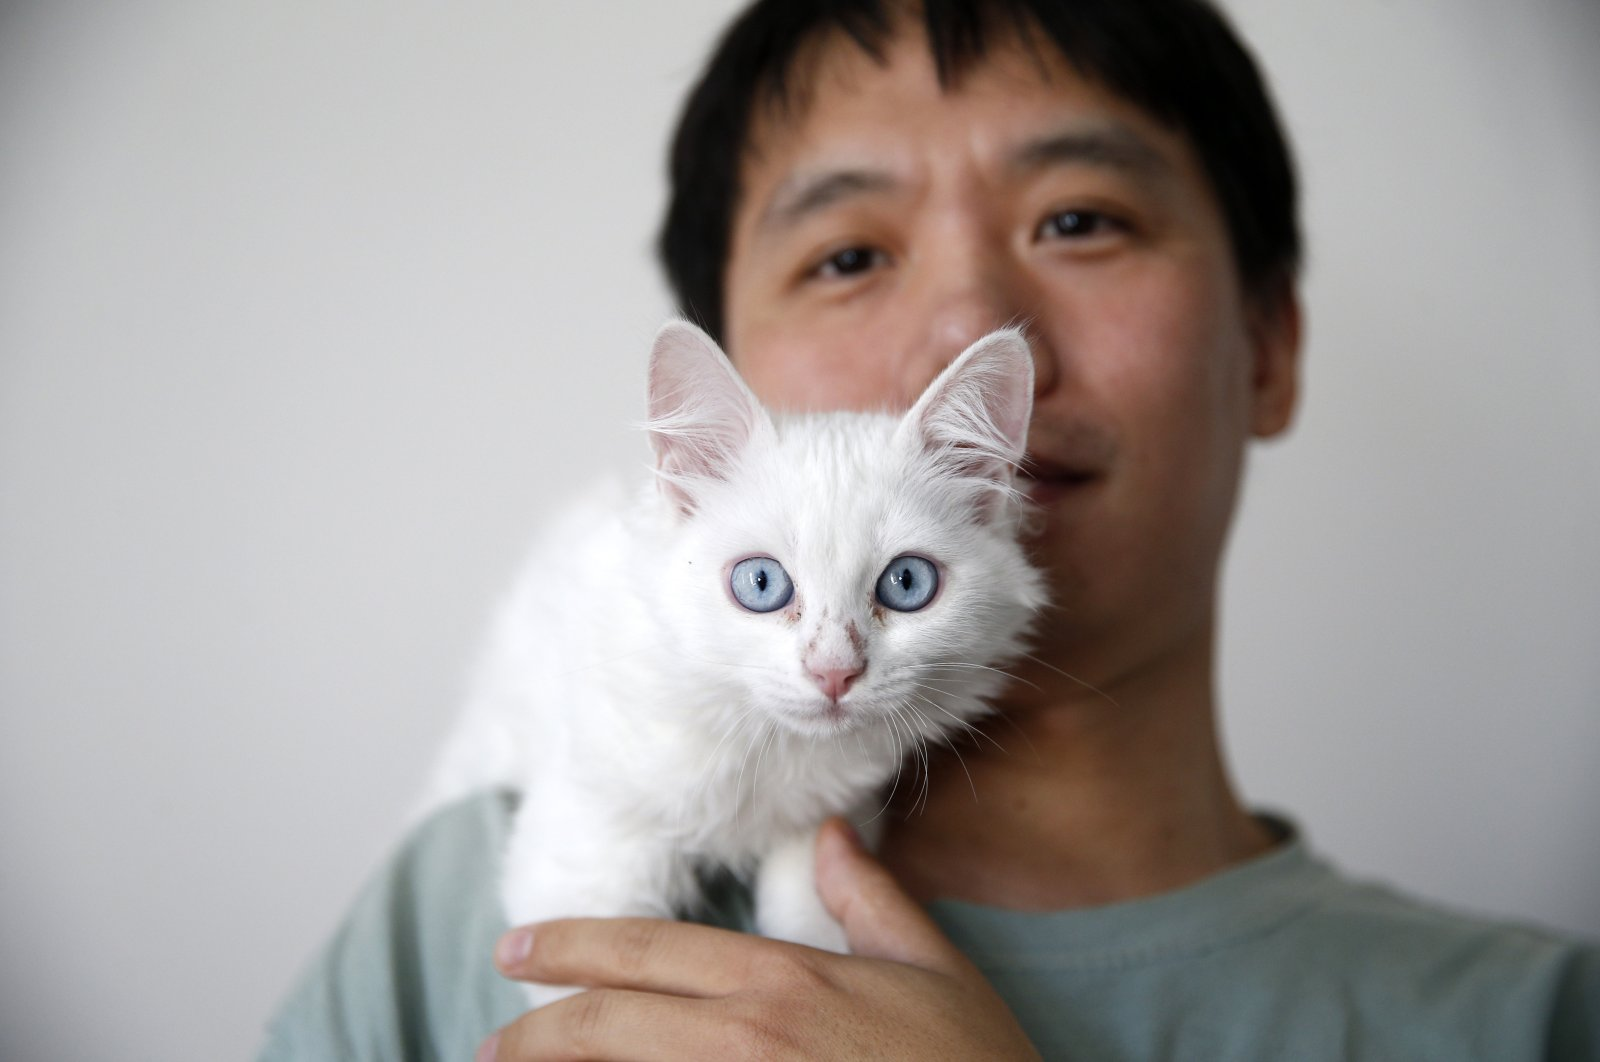 Sun Ping poses with the Van cat he traveled around 7,000 kilometers from China to central Kayseri province to adopt, Turkey, Nov. 18, 2020. (AA Photo)